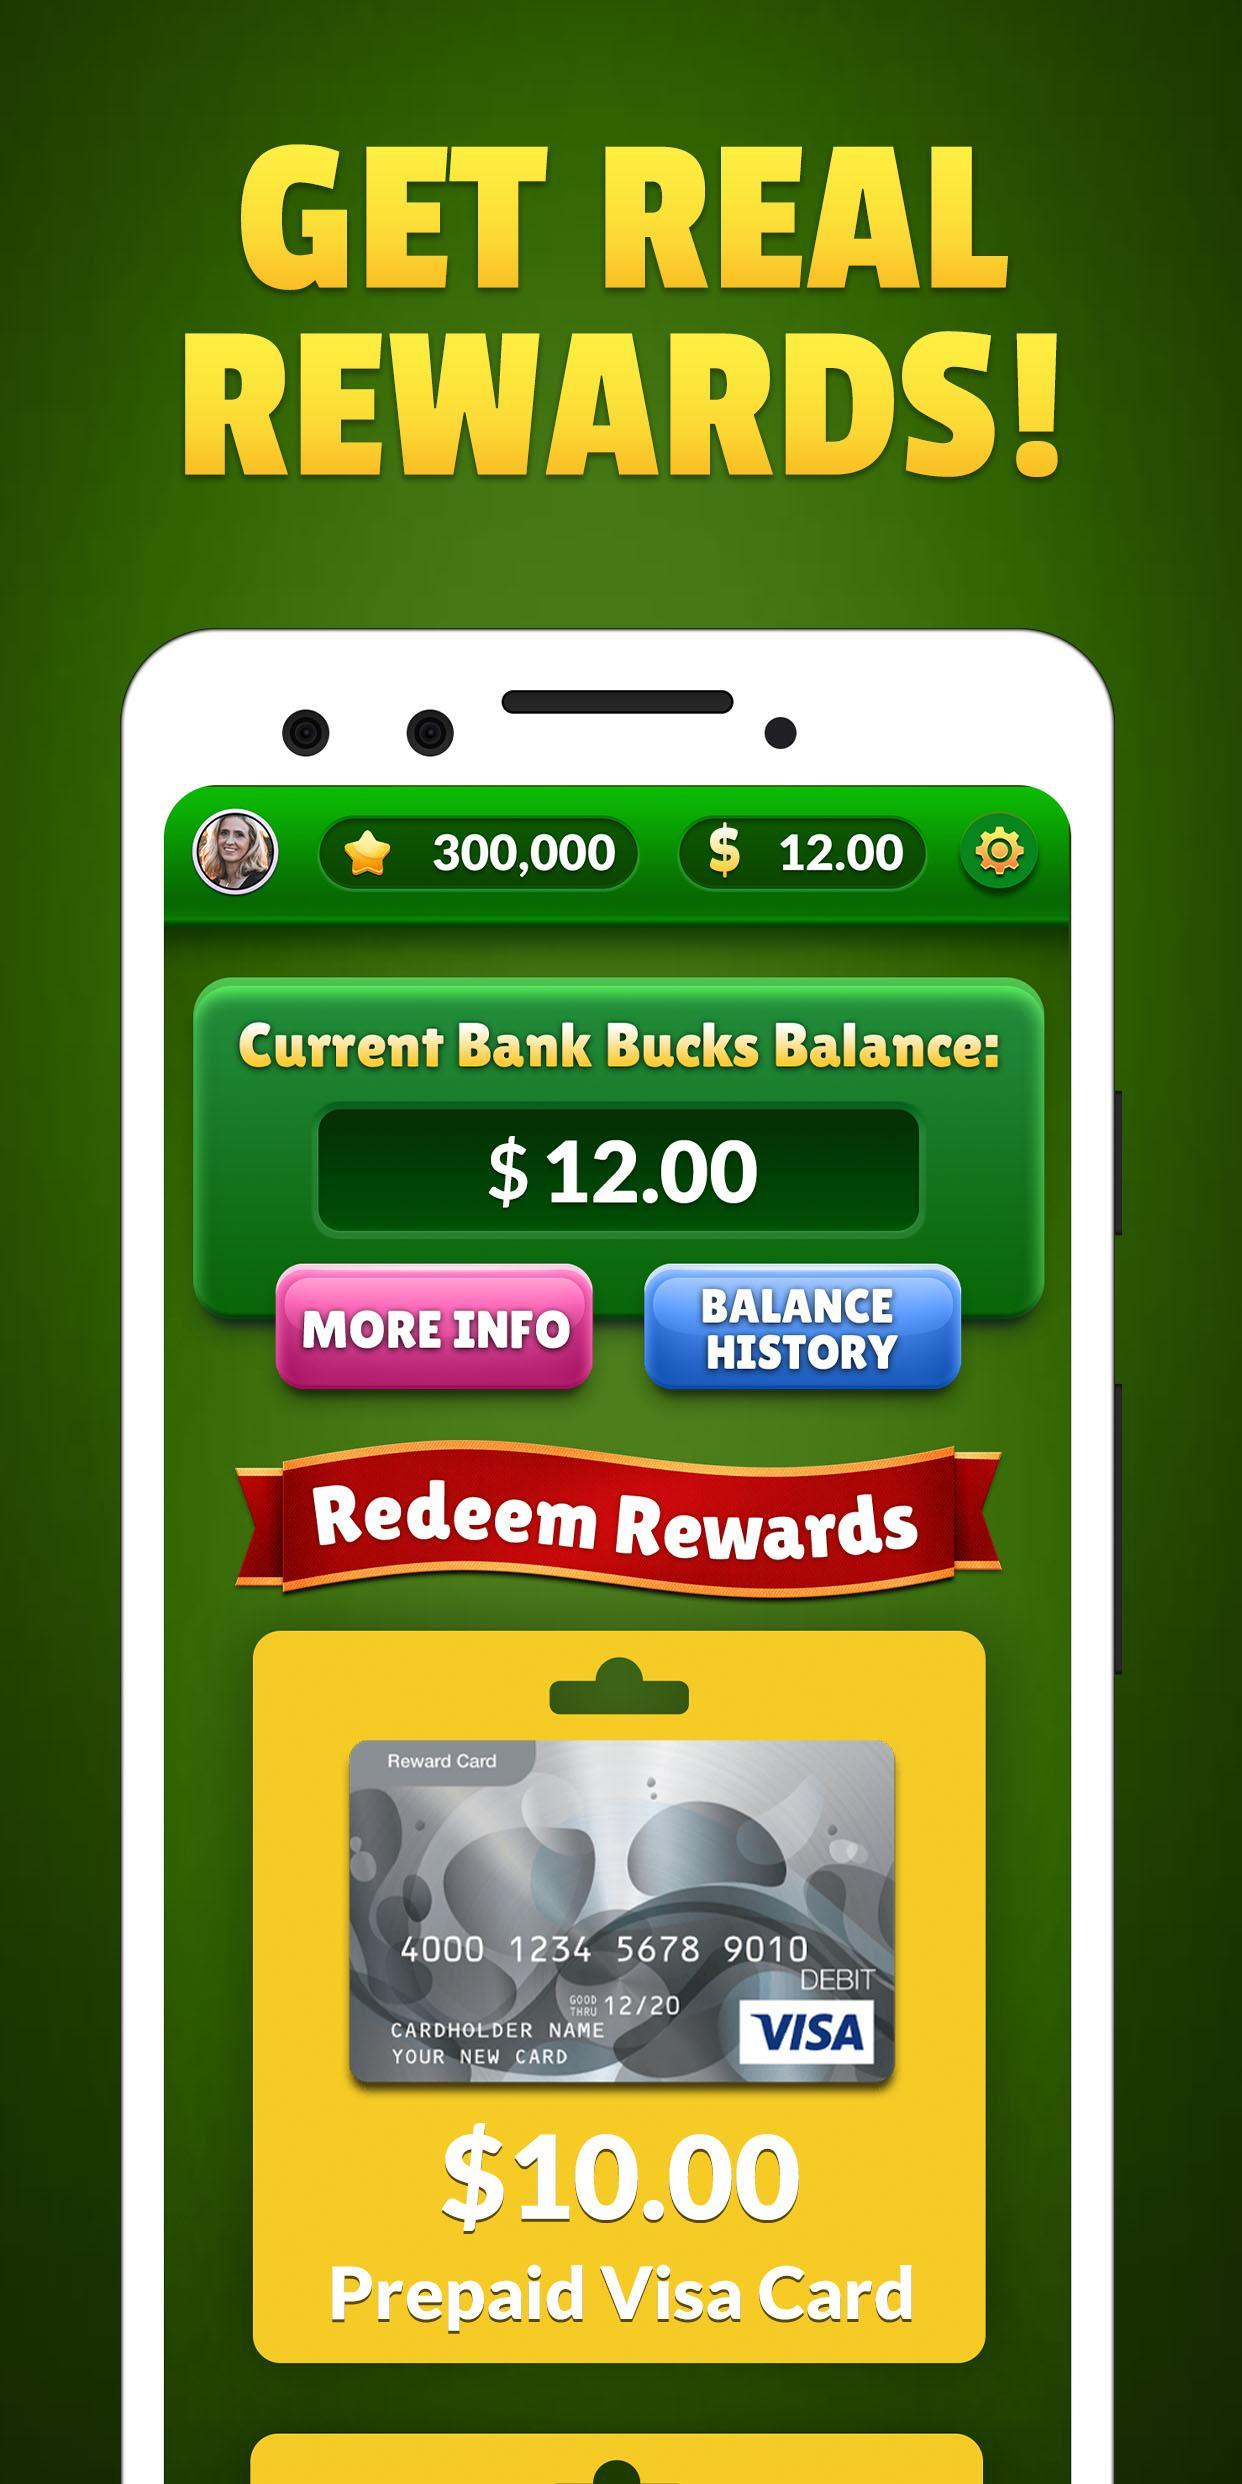 Lucky Scratch WIN REAL MONEY- it's your LUCKY DAY 47.0.0 Screenshot 8